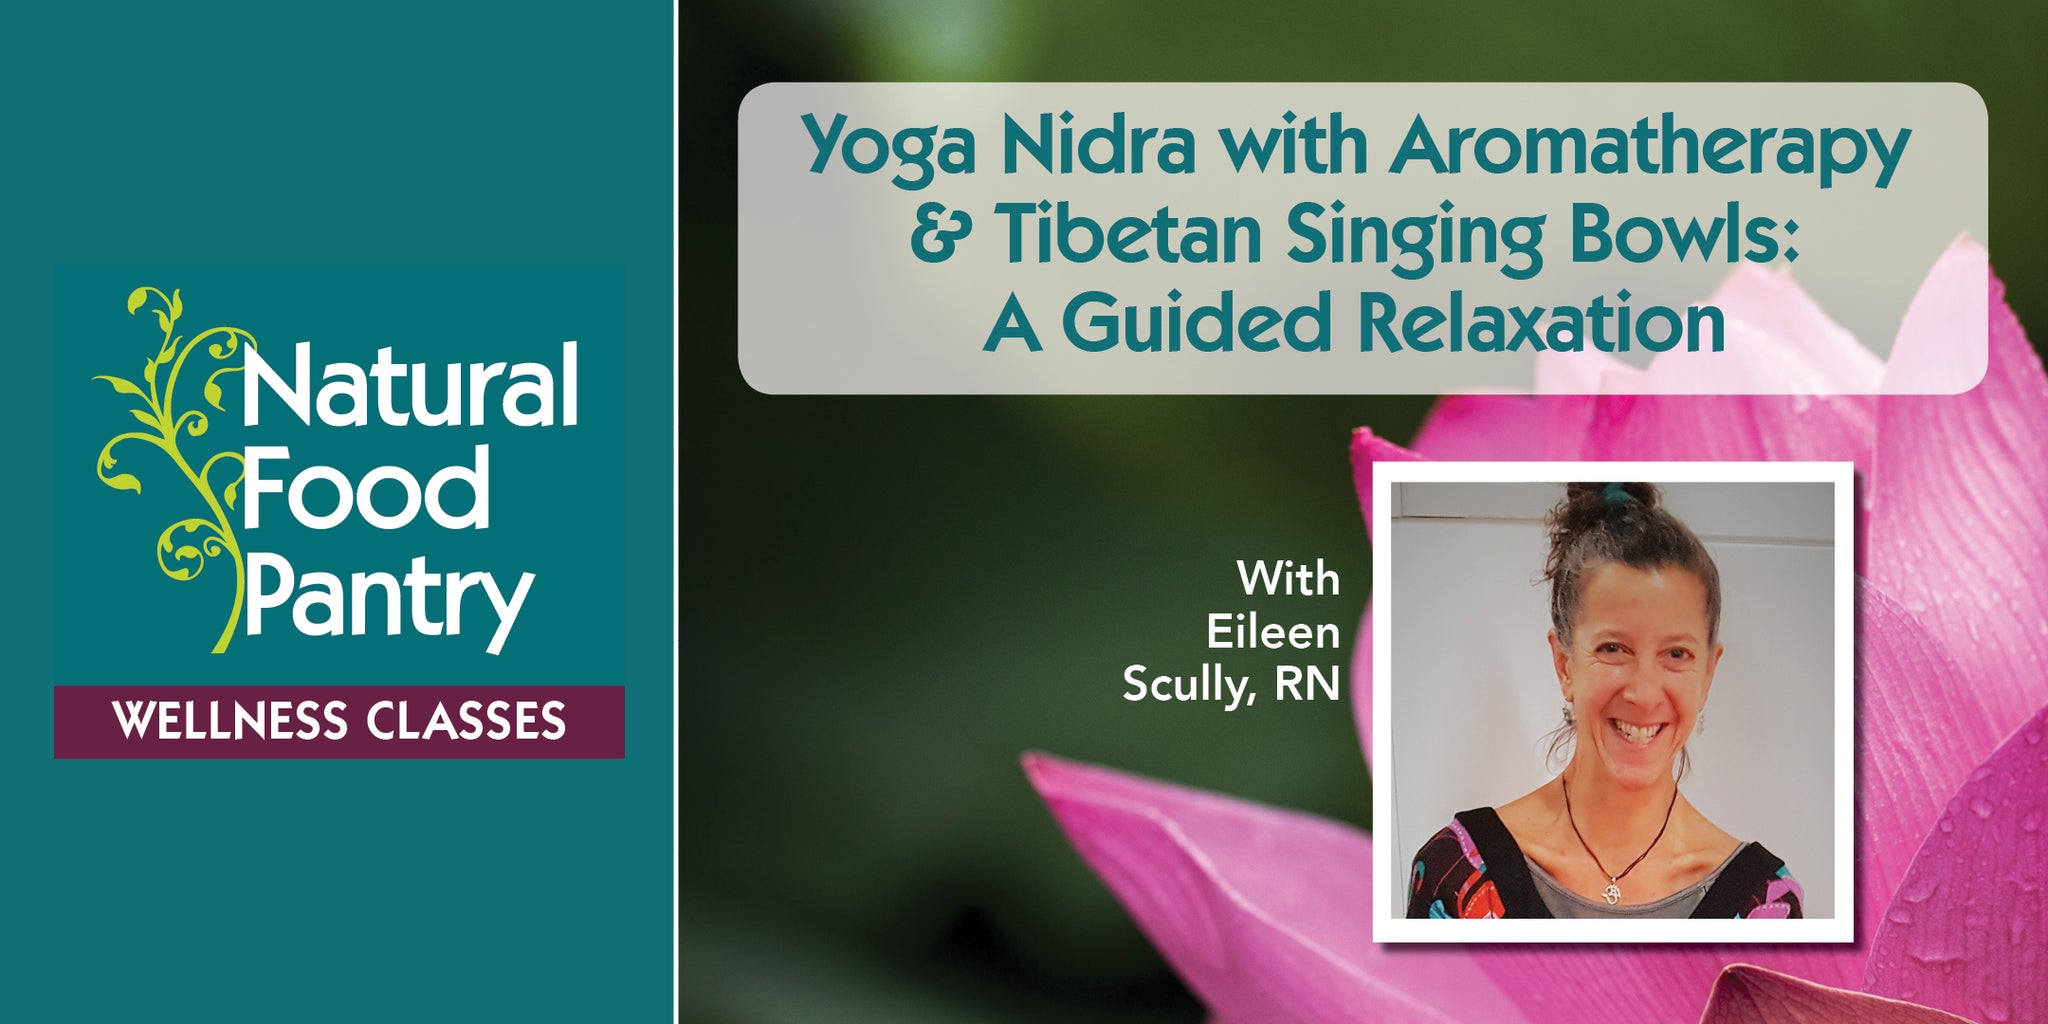 May 9: Yoga Nidra with Aromatherapy & Tibetan Singing Bowls: A Guided Relaxation